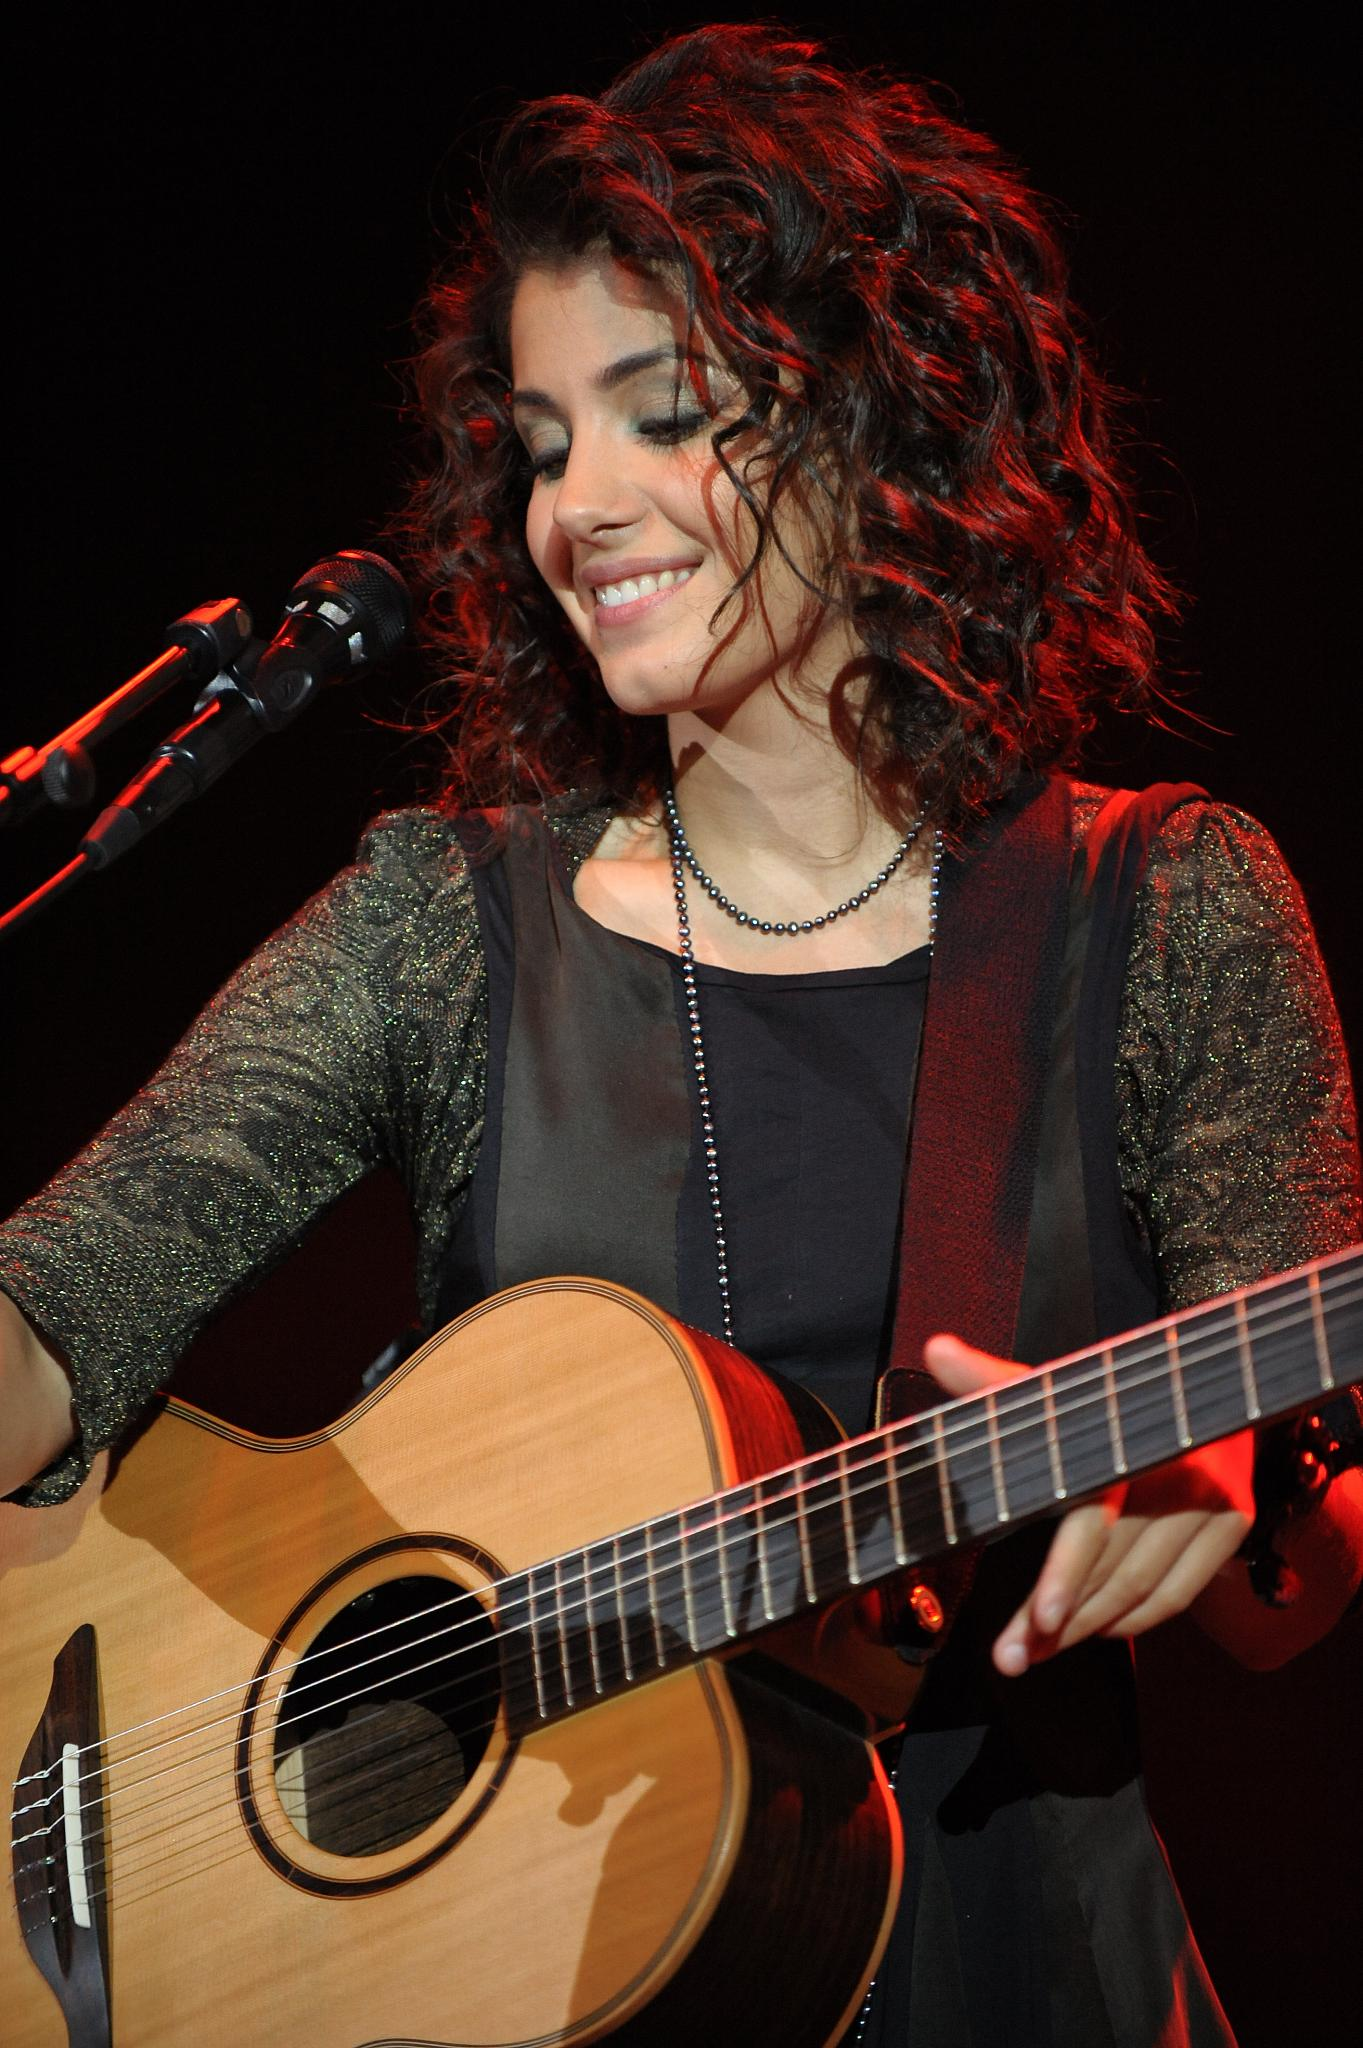 The Georgian-British singer Katie Melua during a concert in the Arena Trier (Germany) on 12.08.2008